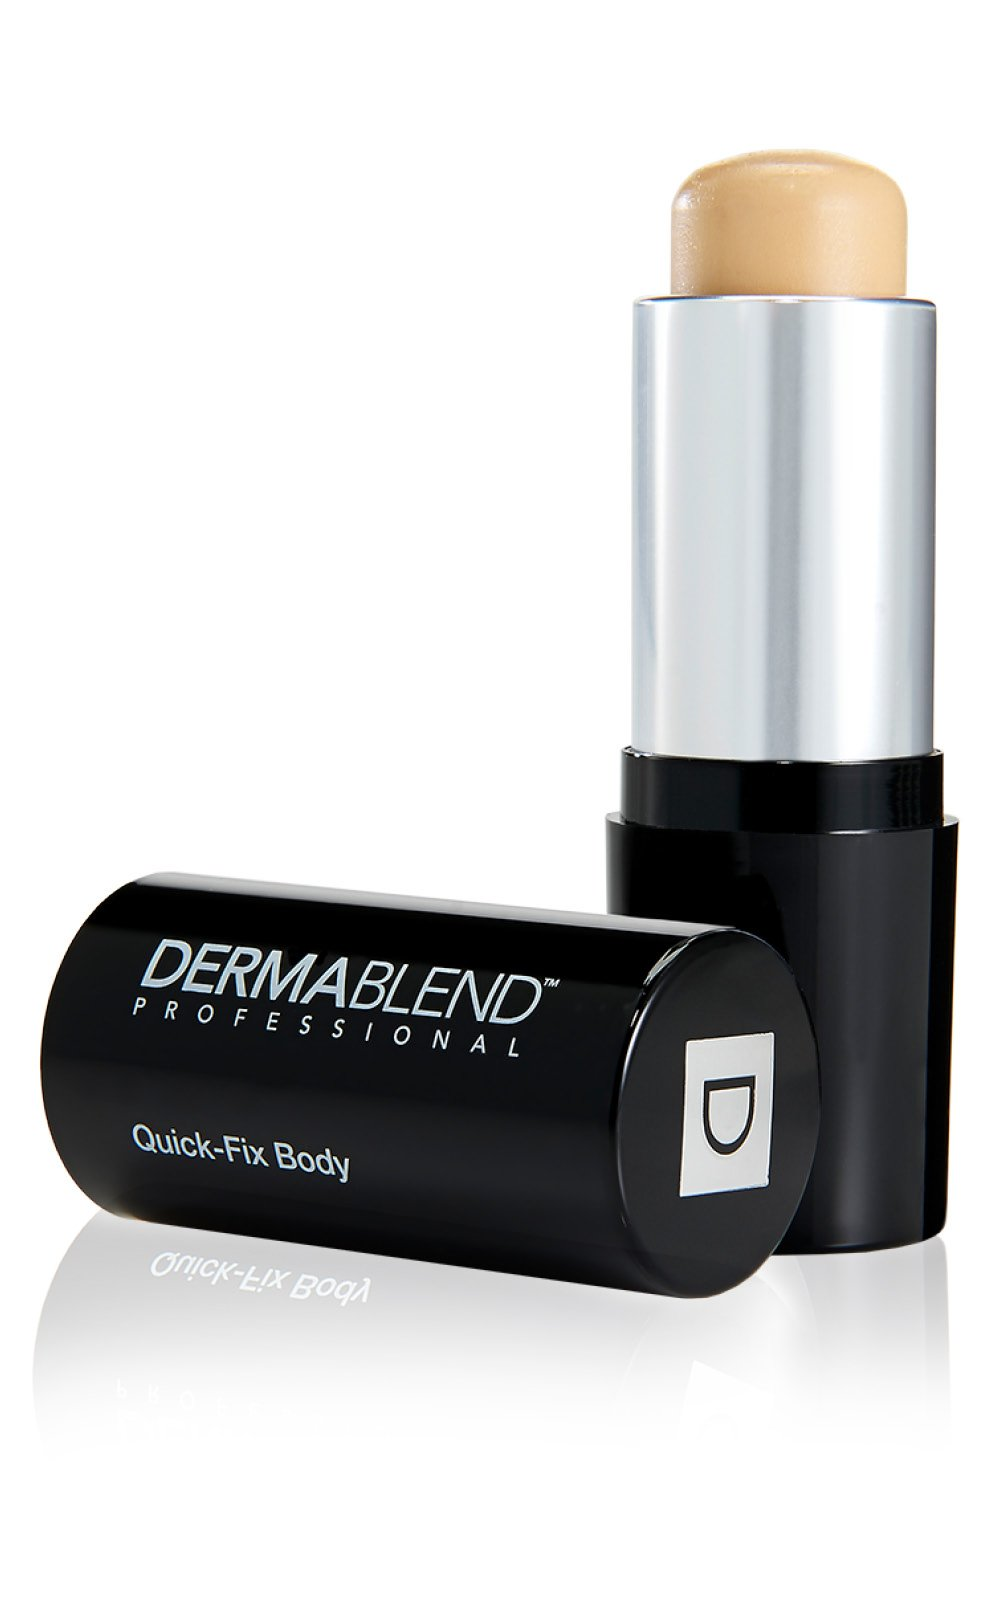 Dermablend Quick-Fix Body Foundation Stick for Full Coverage, 10 Shades, 0.42 Fl. Oz.